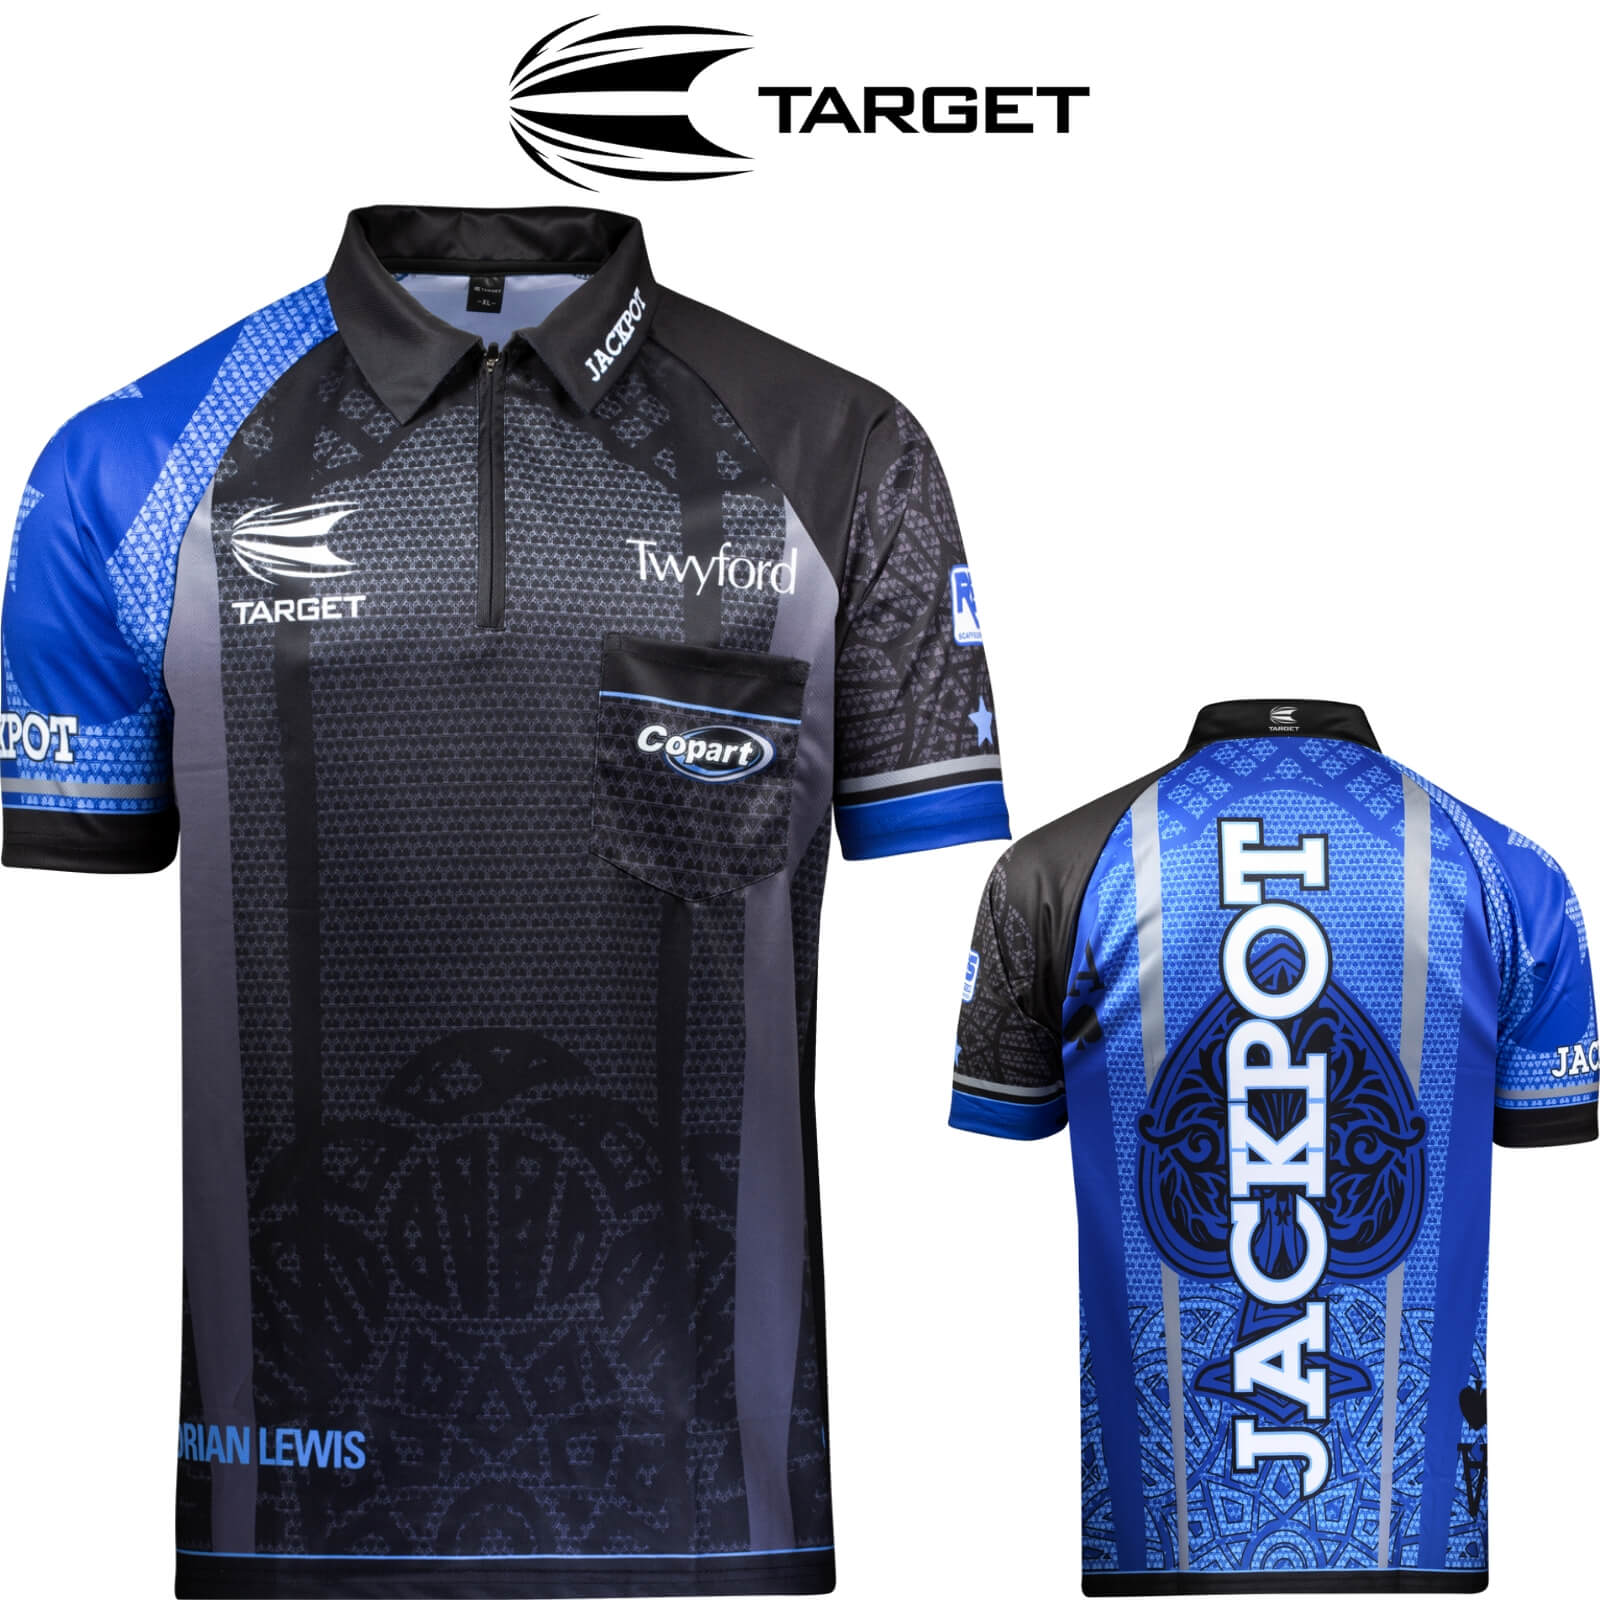 Dart Shirts - Target - Official Adrian Lewis Gen 3 Dart Shirts - XS to 5XL